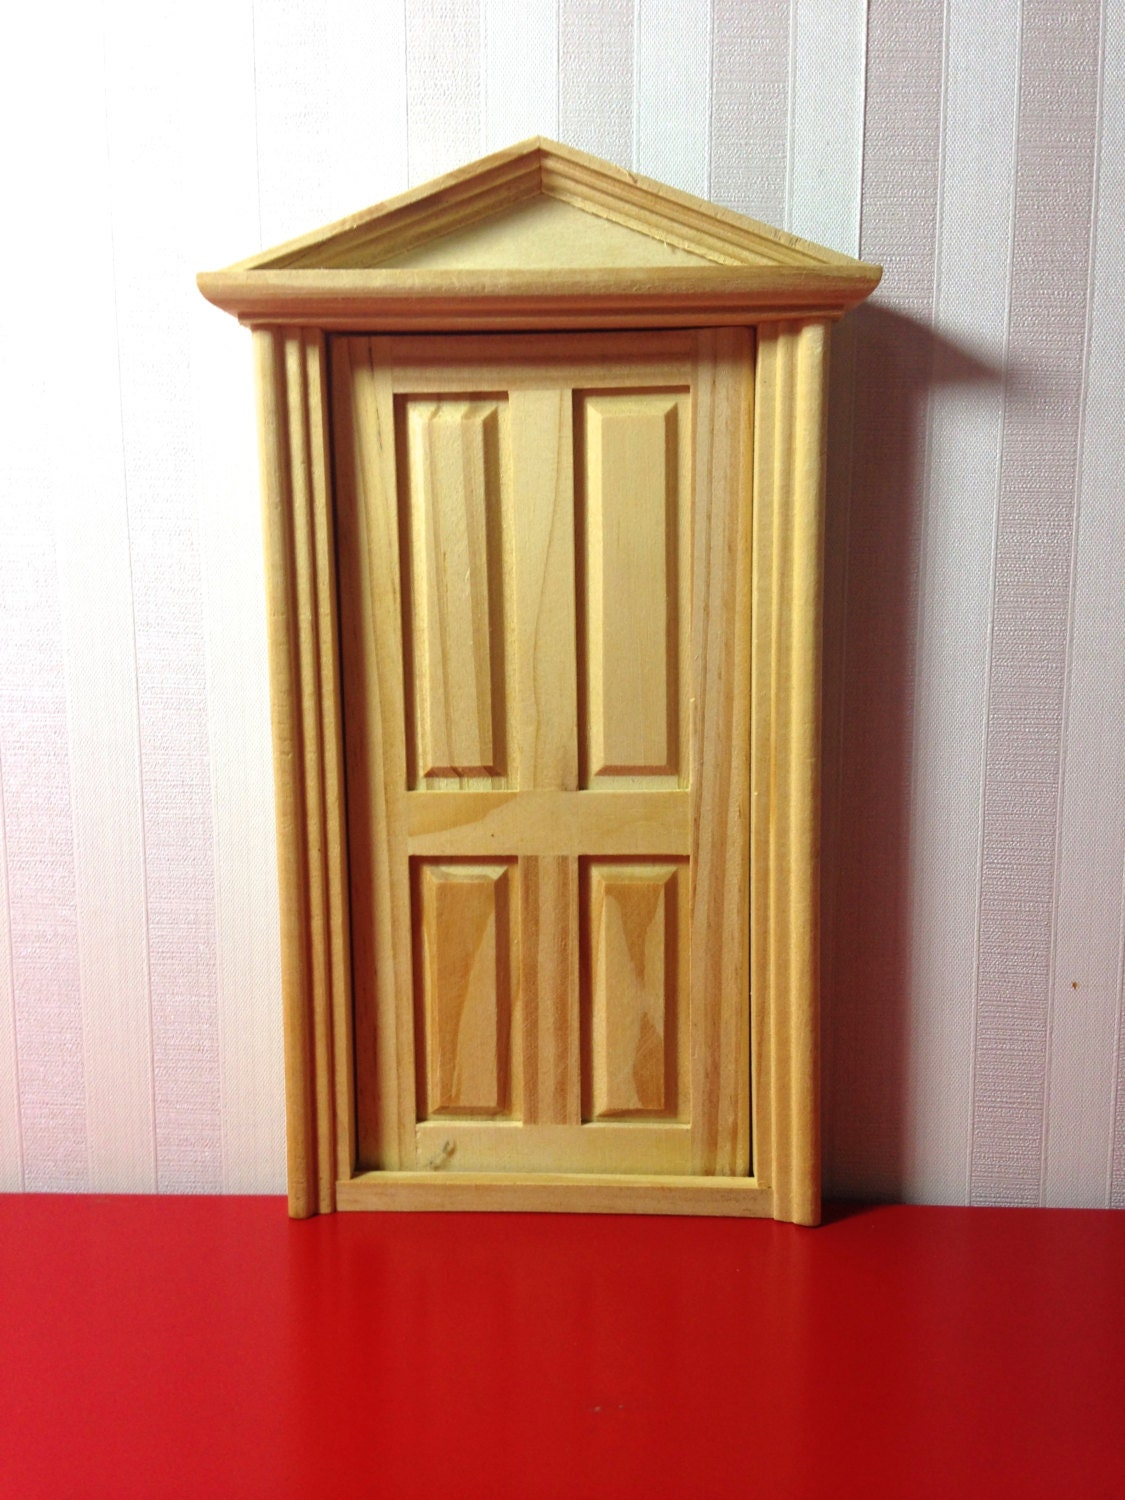 1500 #B41719 Fairy Door Unfinished Wood Dollhouse Front Door By OneColonTwelve pic Unfinished Wood Doors 40711125